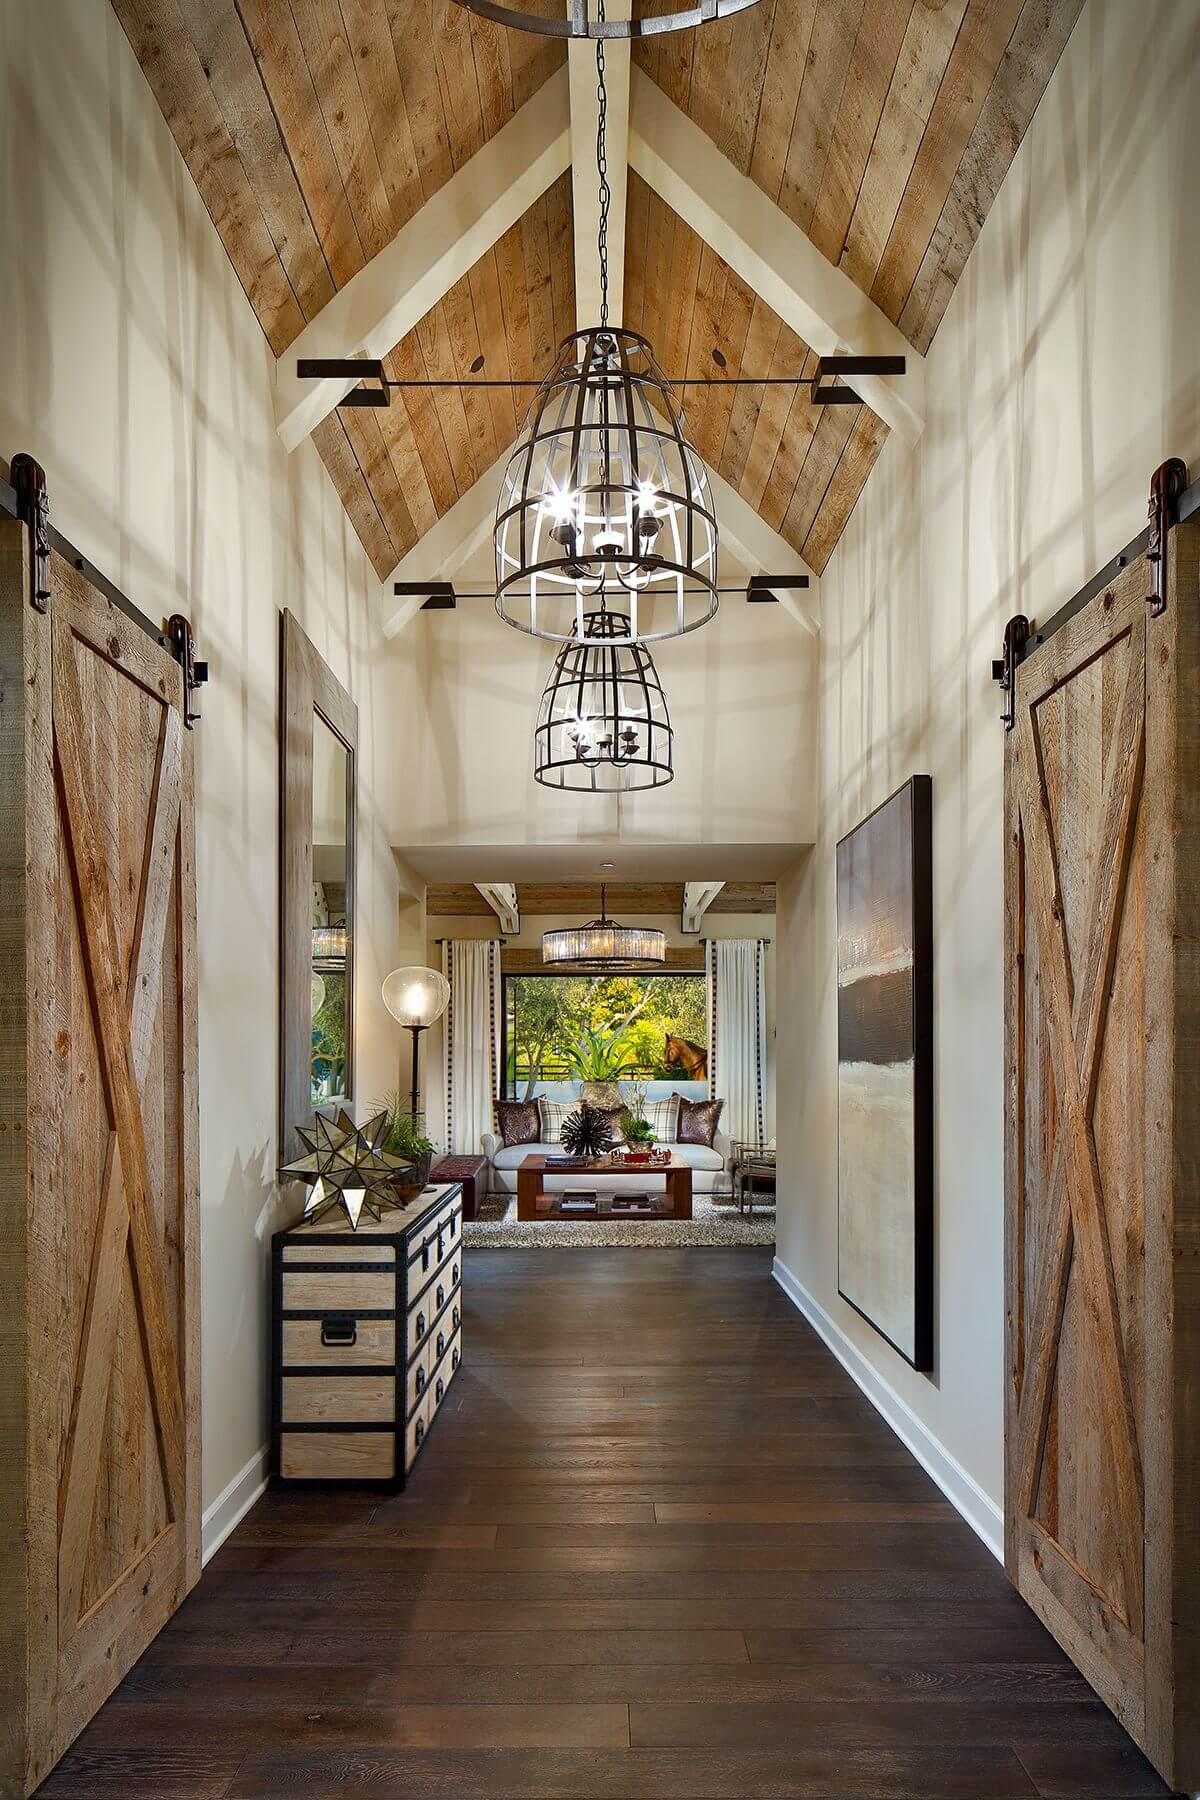 35+ Best Farmhouse Interior Ideas and Designs for 2018 Farmhouse Interior Design Decoration on farmhouse bathroom sinks and countertops, farmhouse architect, farmhouse kitchen, farmhouse library, farmhouse fireplace design, farmhouse stair design, farmhouse roof design, farmhouse building designs, modern country design, farmhouse landscaping, parisian home design, farmhouse patio design, farmhouse design elements, farmhouse architectural details, farmhouse vintage finds, farmhouse pool design, farmhouse bathroom remodeling, modern farmhouse design, farmhouse ceiling designs, farmhouse exteriors,